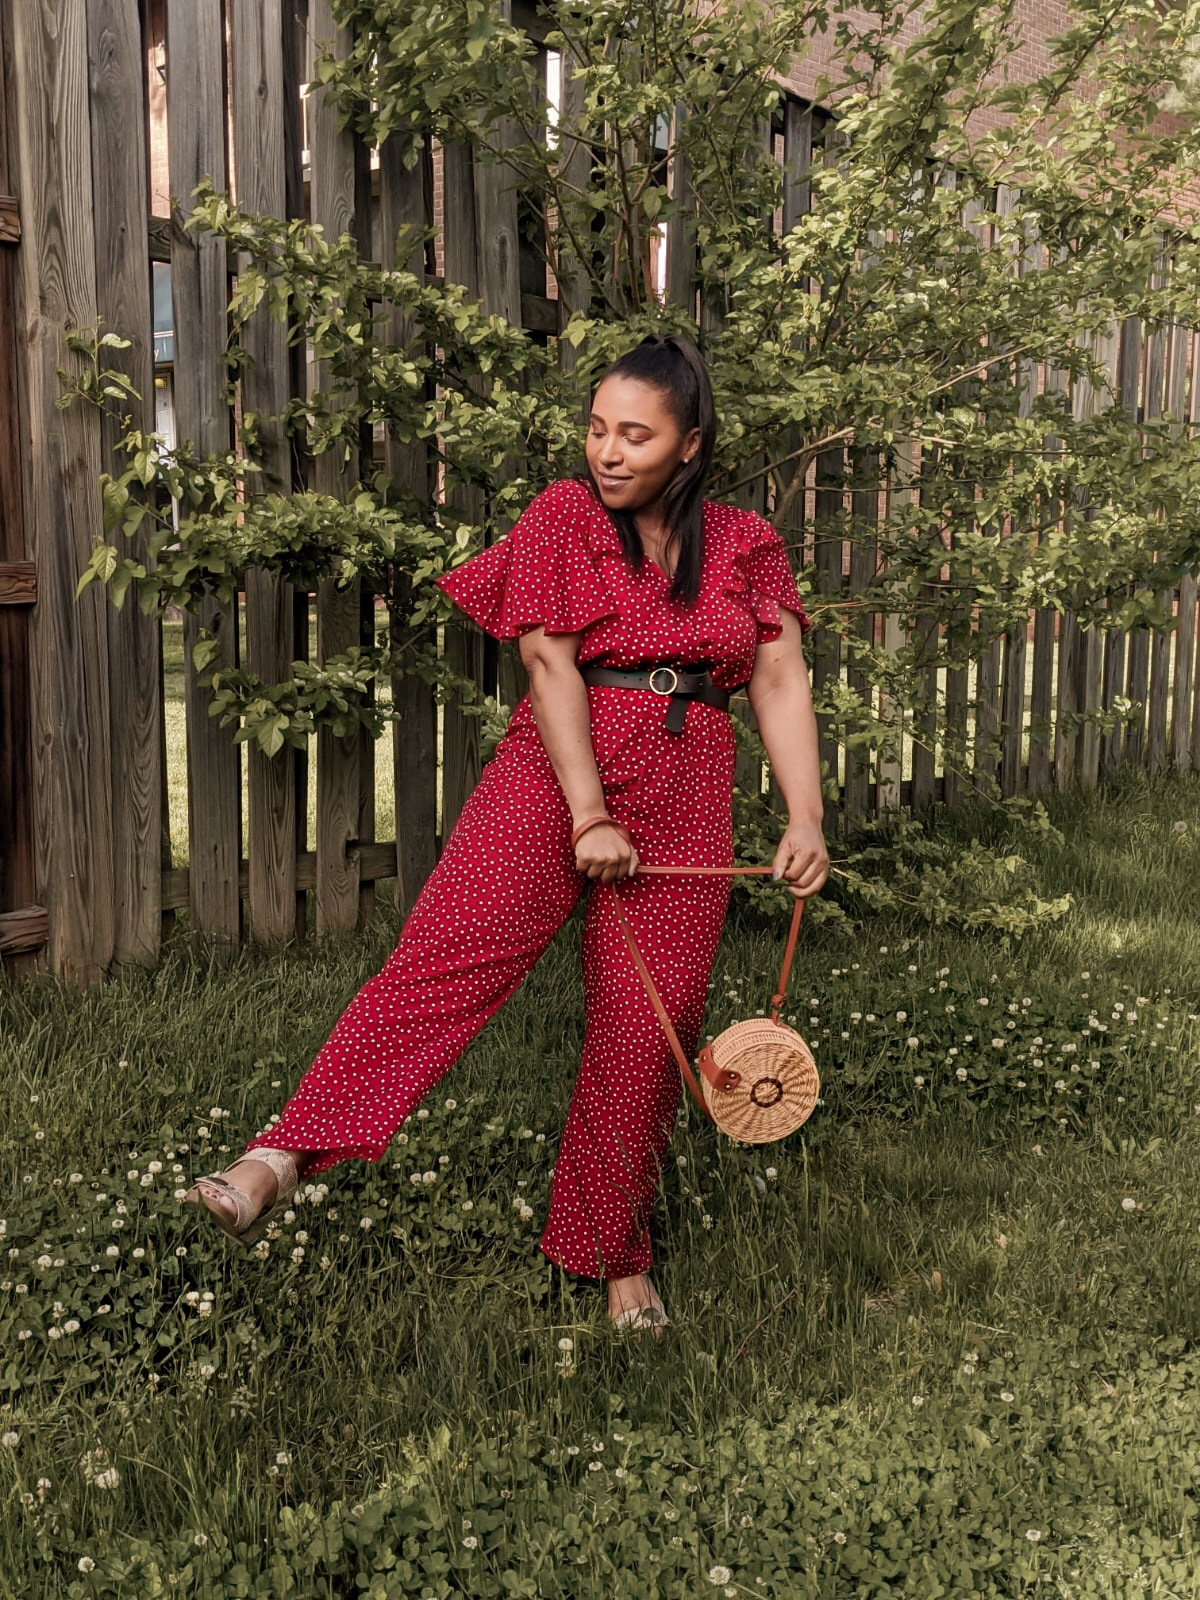 shein, shein reviews, shein jumpsuits, polka dot outfits, summer jumpsuits, how to style a jumpsuit, pattys kloset, easy summer outfits, how to style polka dots